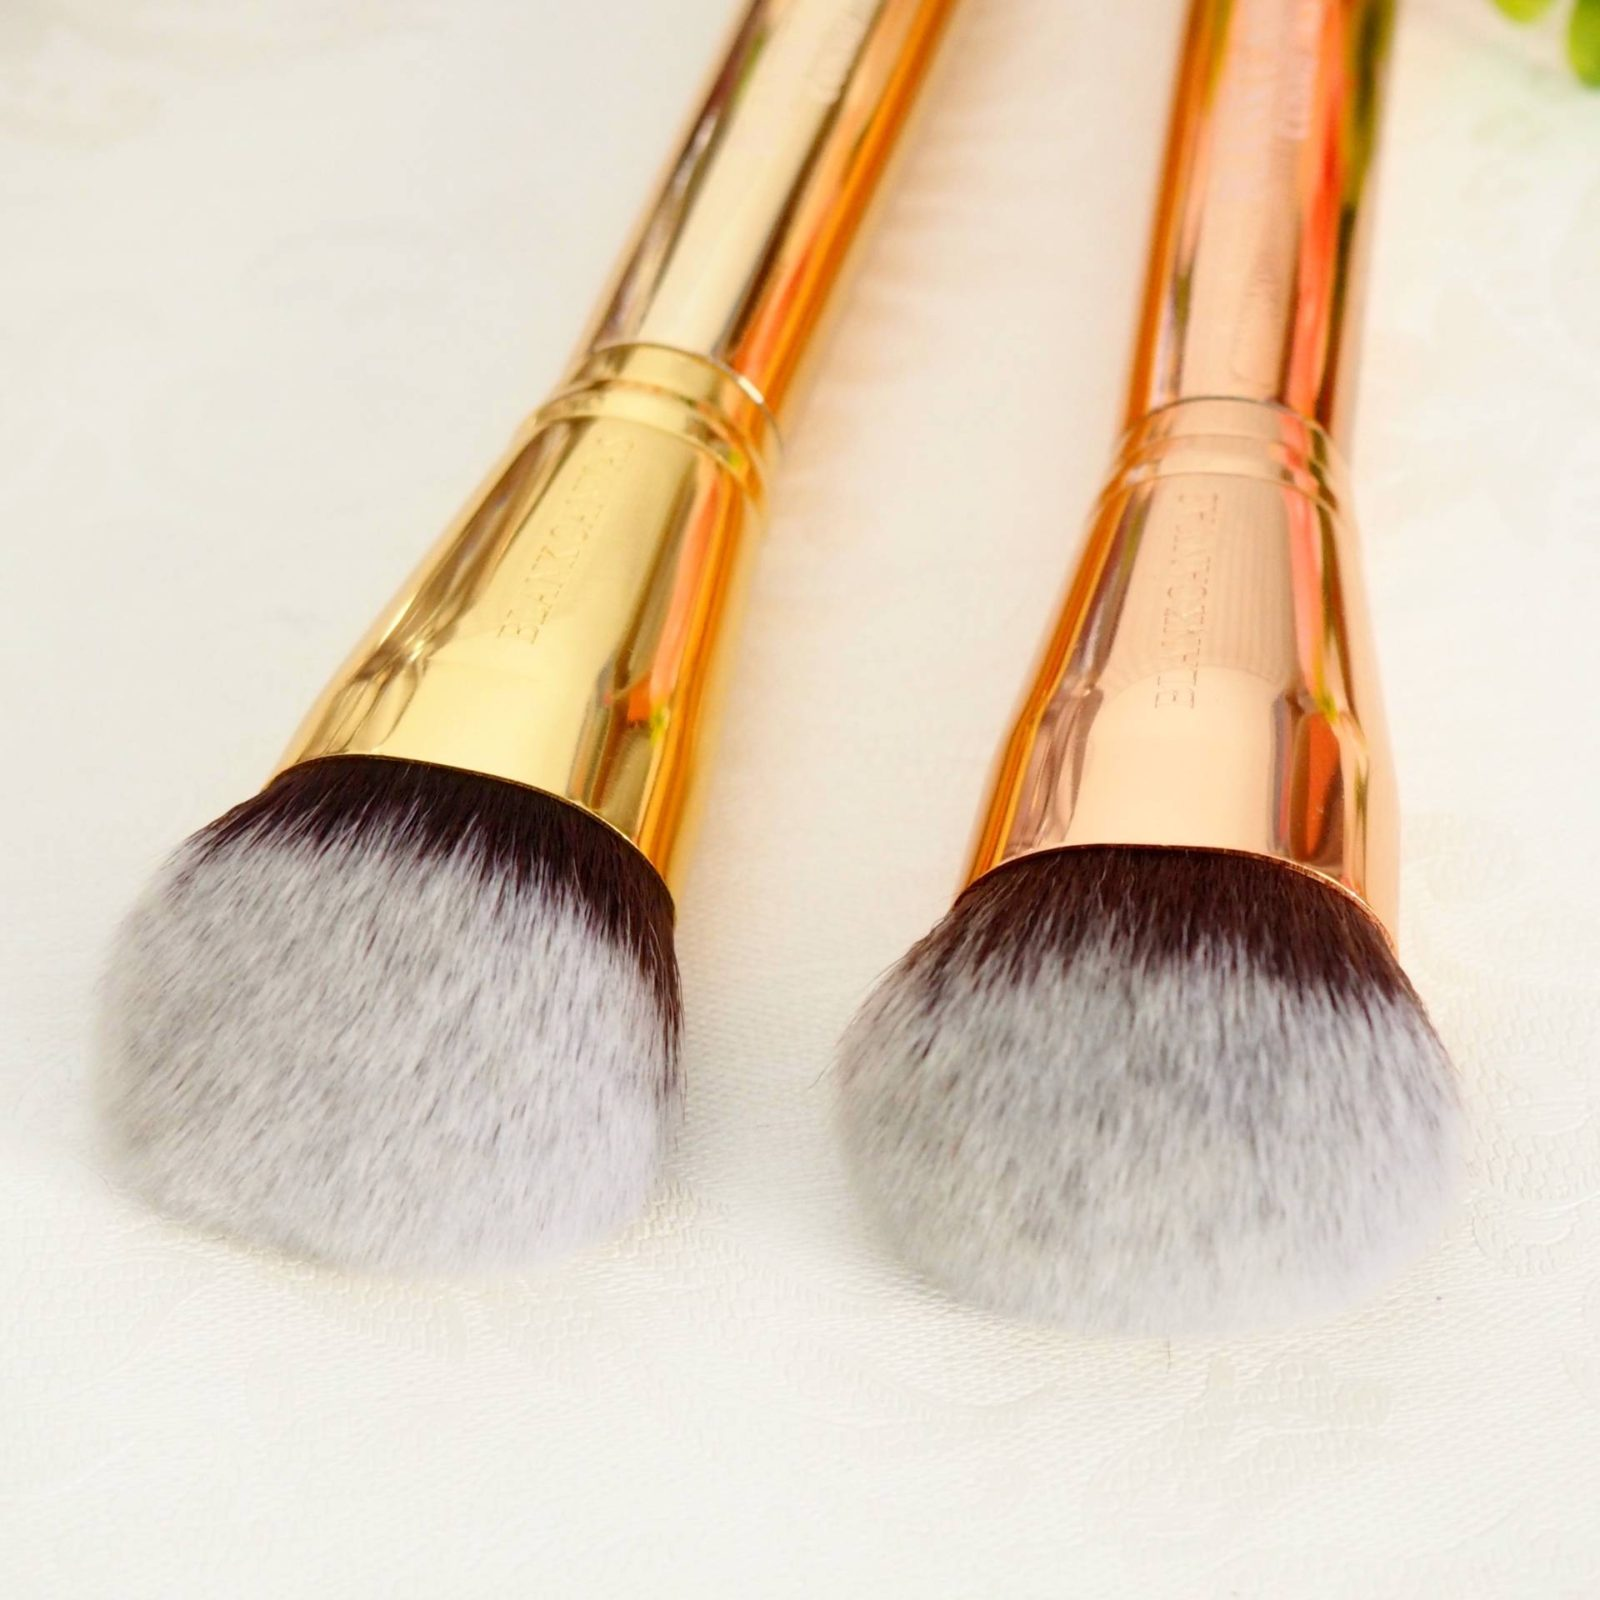 Blank Canvas Dimension Brushes F06 vs F08